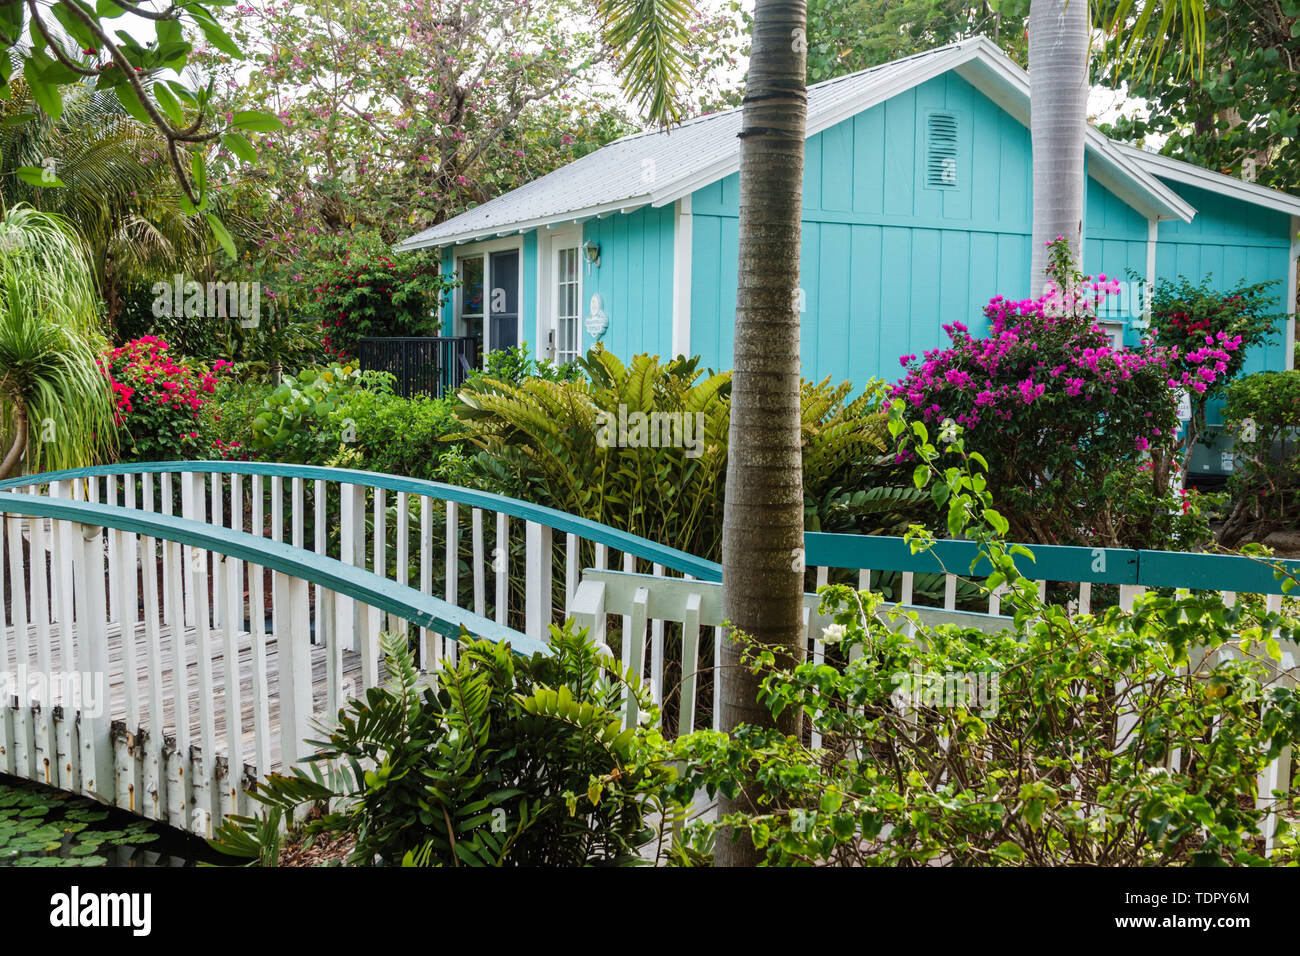 Captiva Island Florida 'Tween Waters Inn Island Resort & Spa hotel garden cottage bungalow wooden bridge Stock Photo